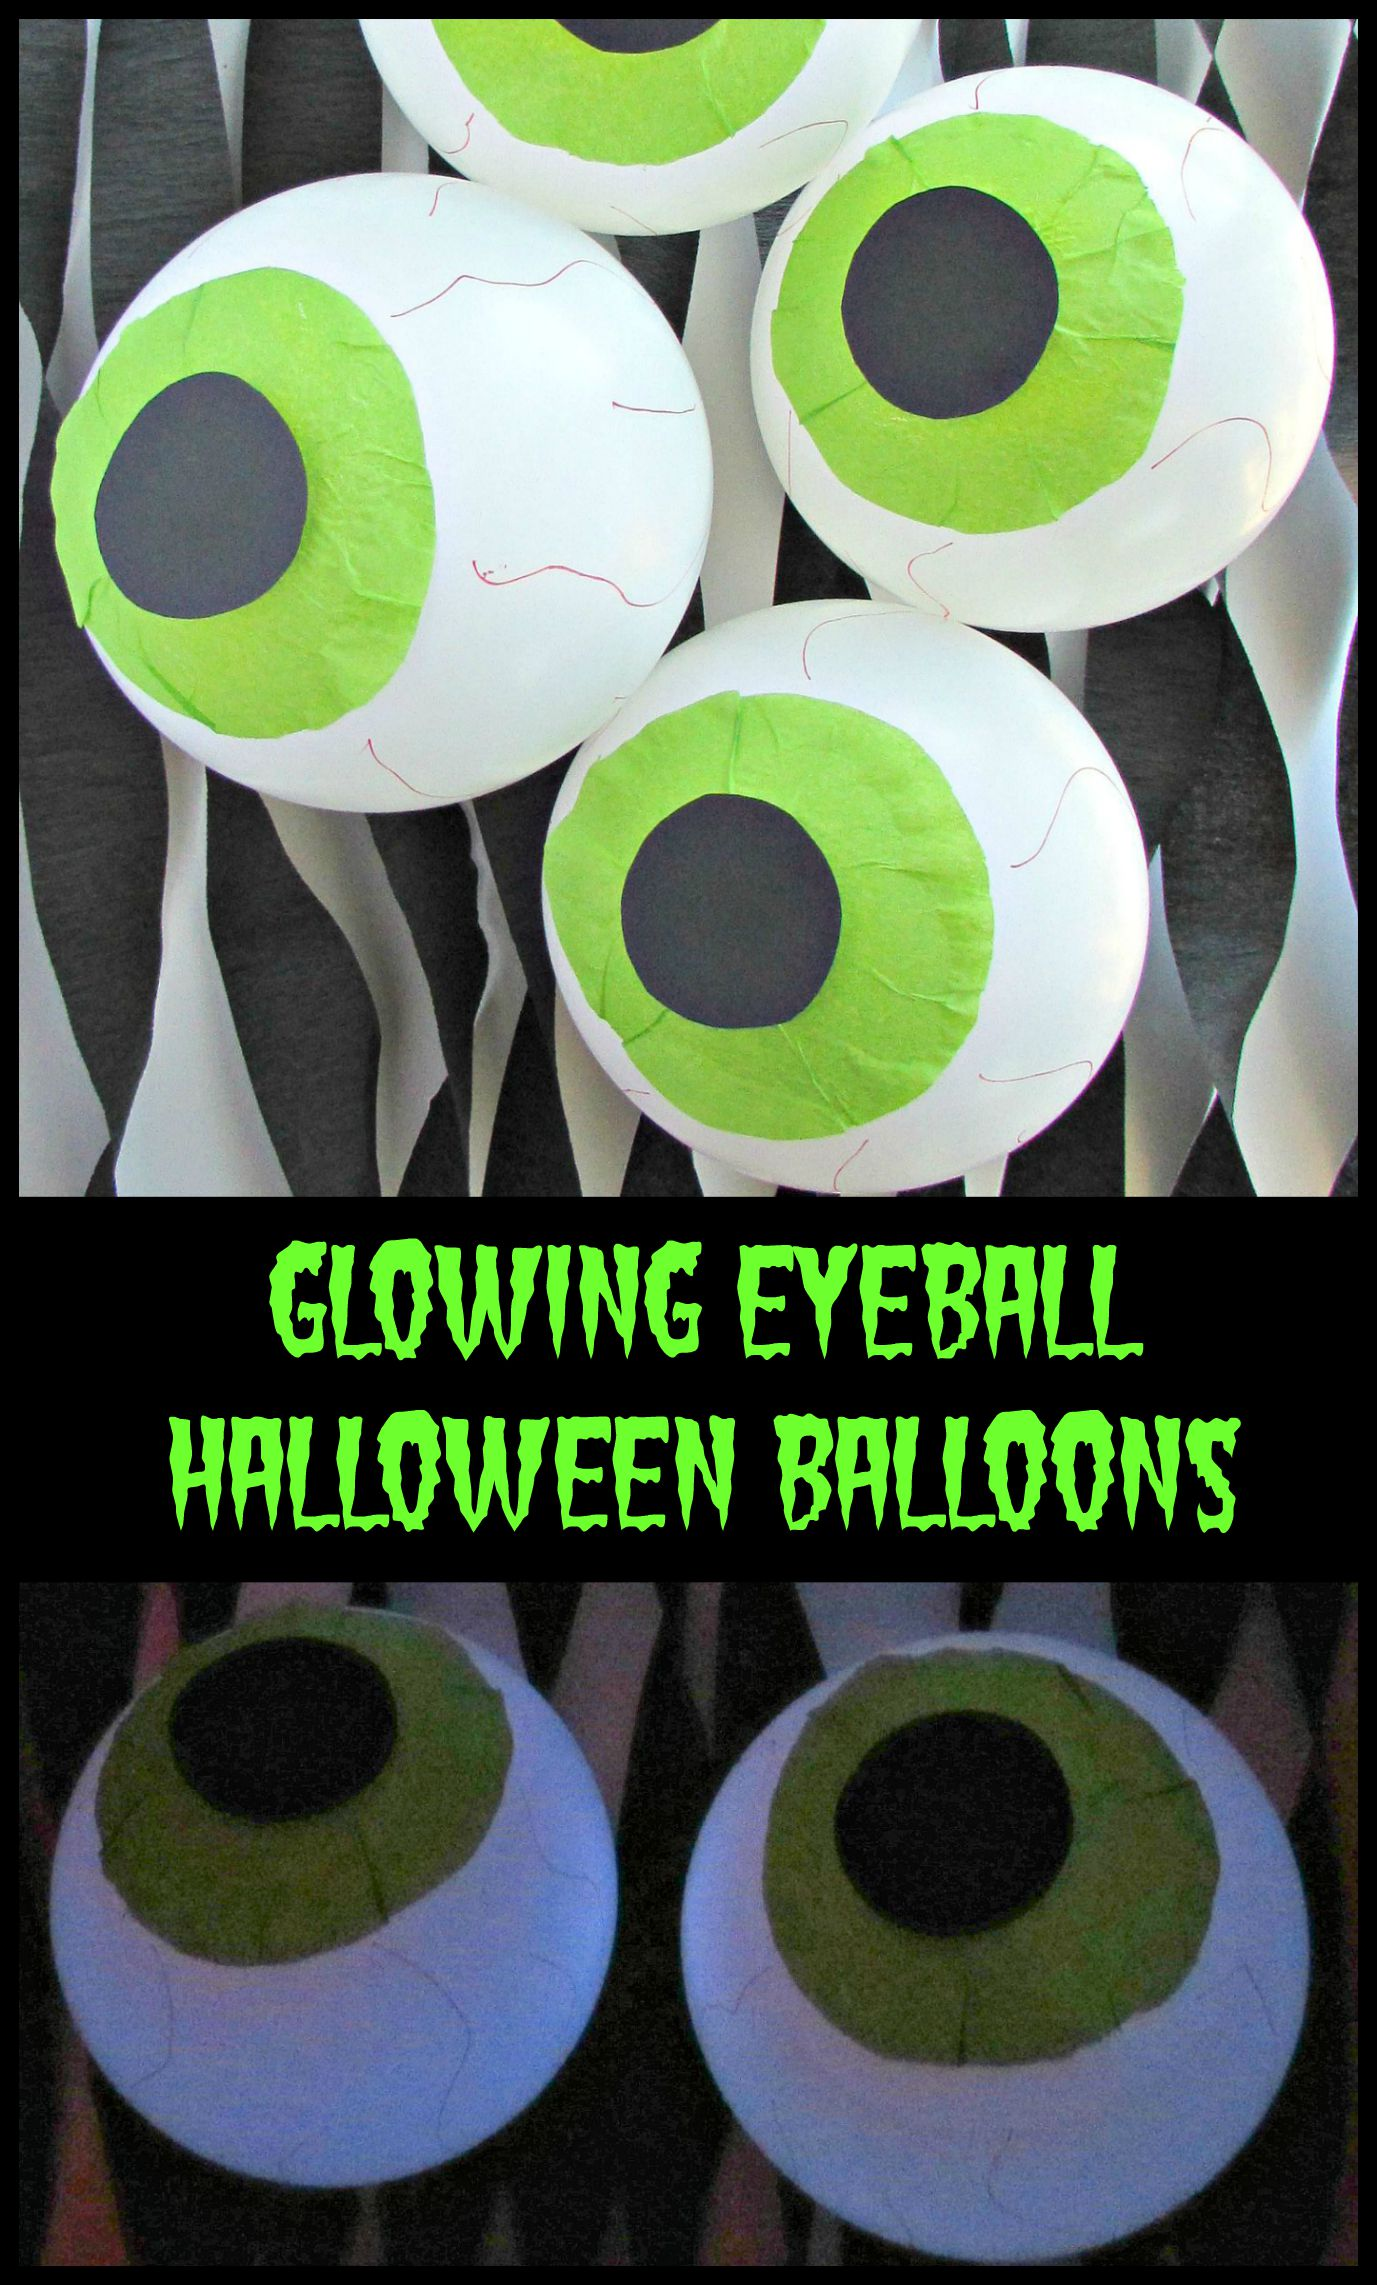 Halloween balloon decorations Step By Step Glowing Eyeball Halloween Ballooons Val Event Gal Copy Val Event Gal Halloween Balloon Decorations Archives Val Event Gal